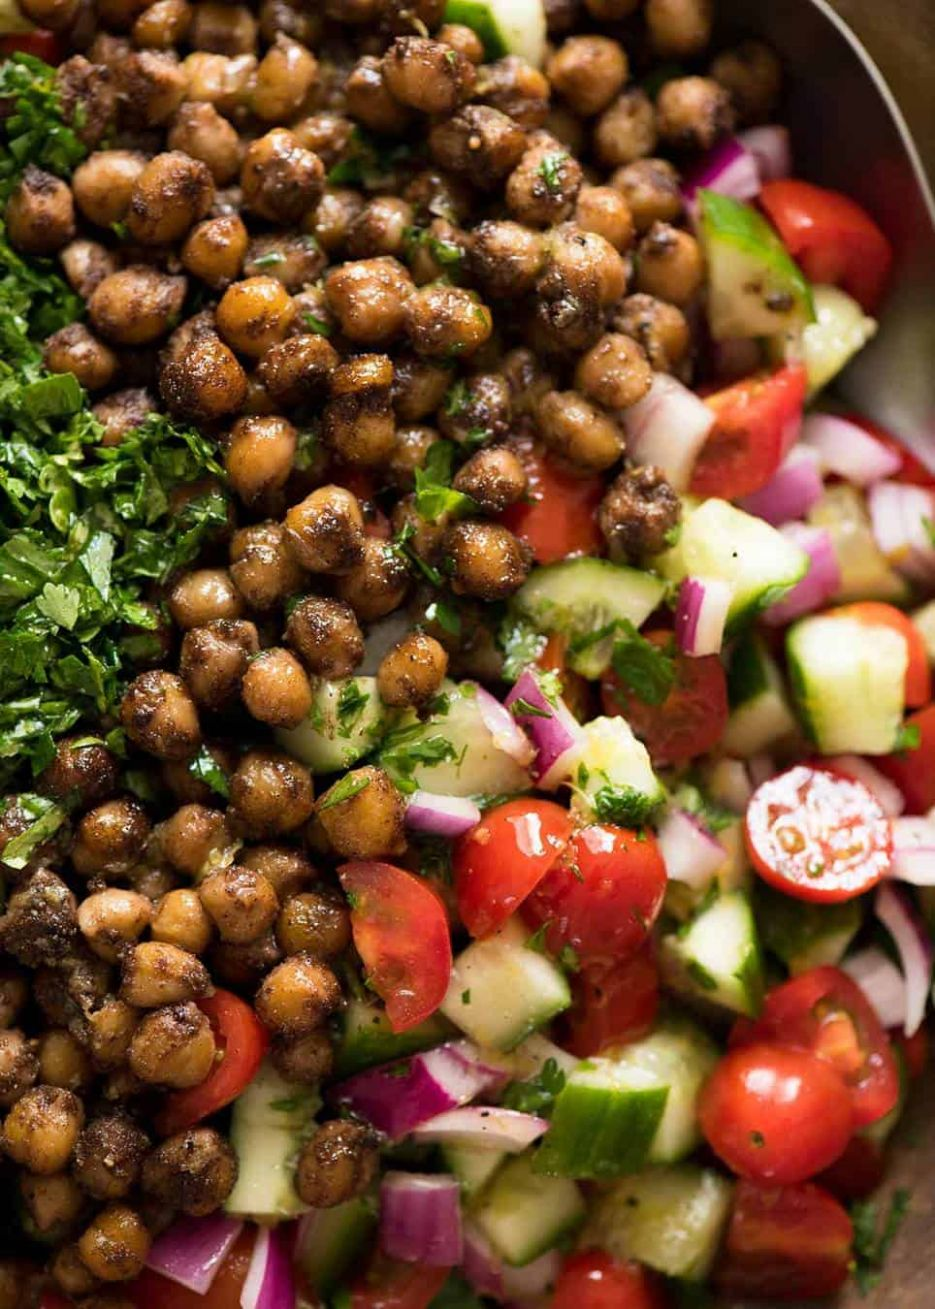 Middle Eastern Spiced Chickpea Salad - Salad Recipes Chickpeas